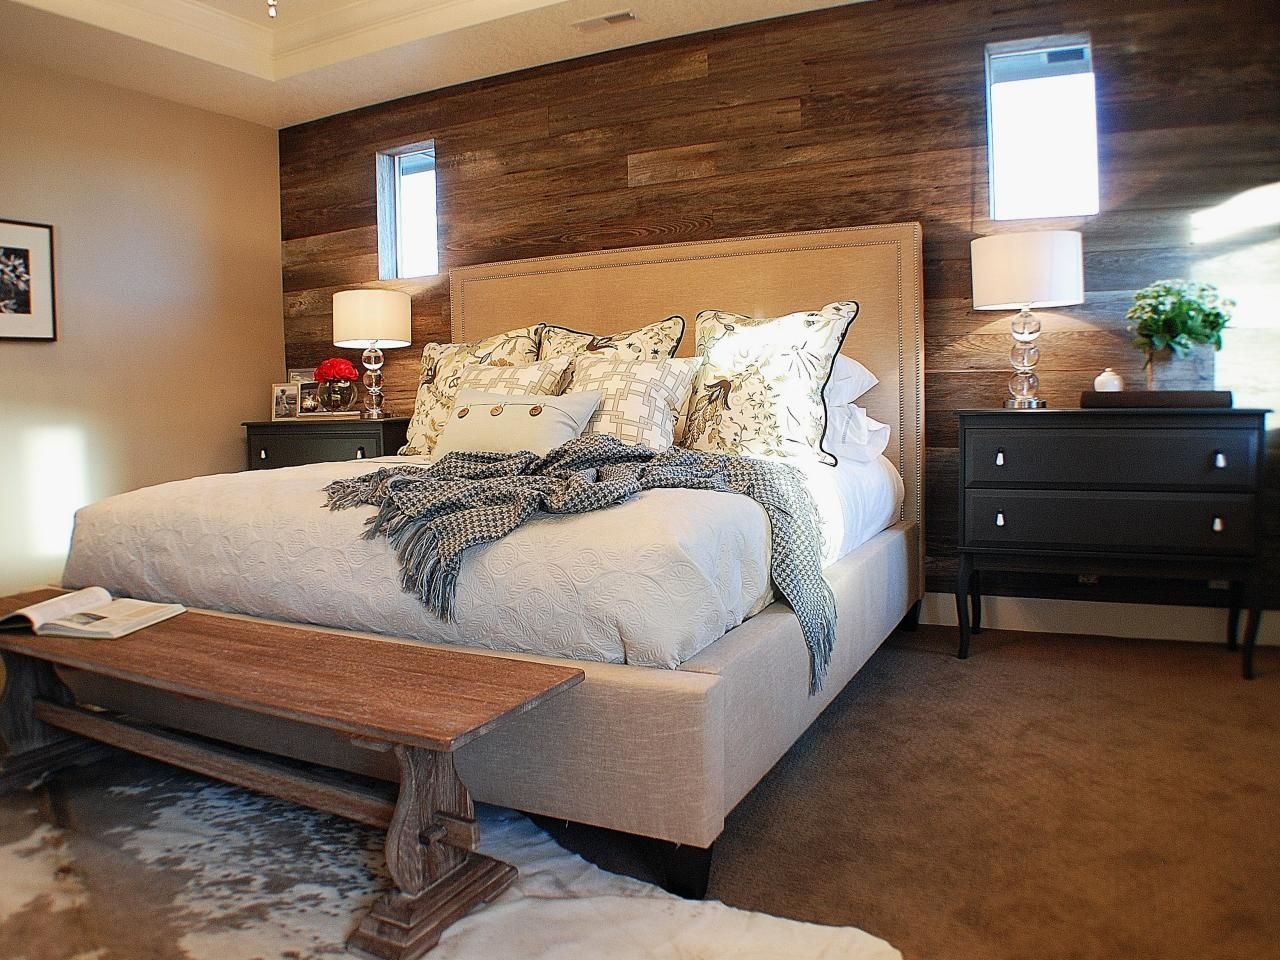 the warm color palette of brown and beige in this bedroom is best